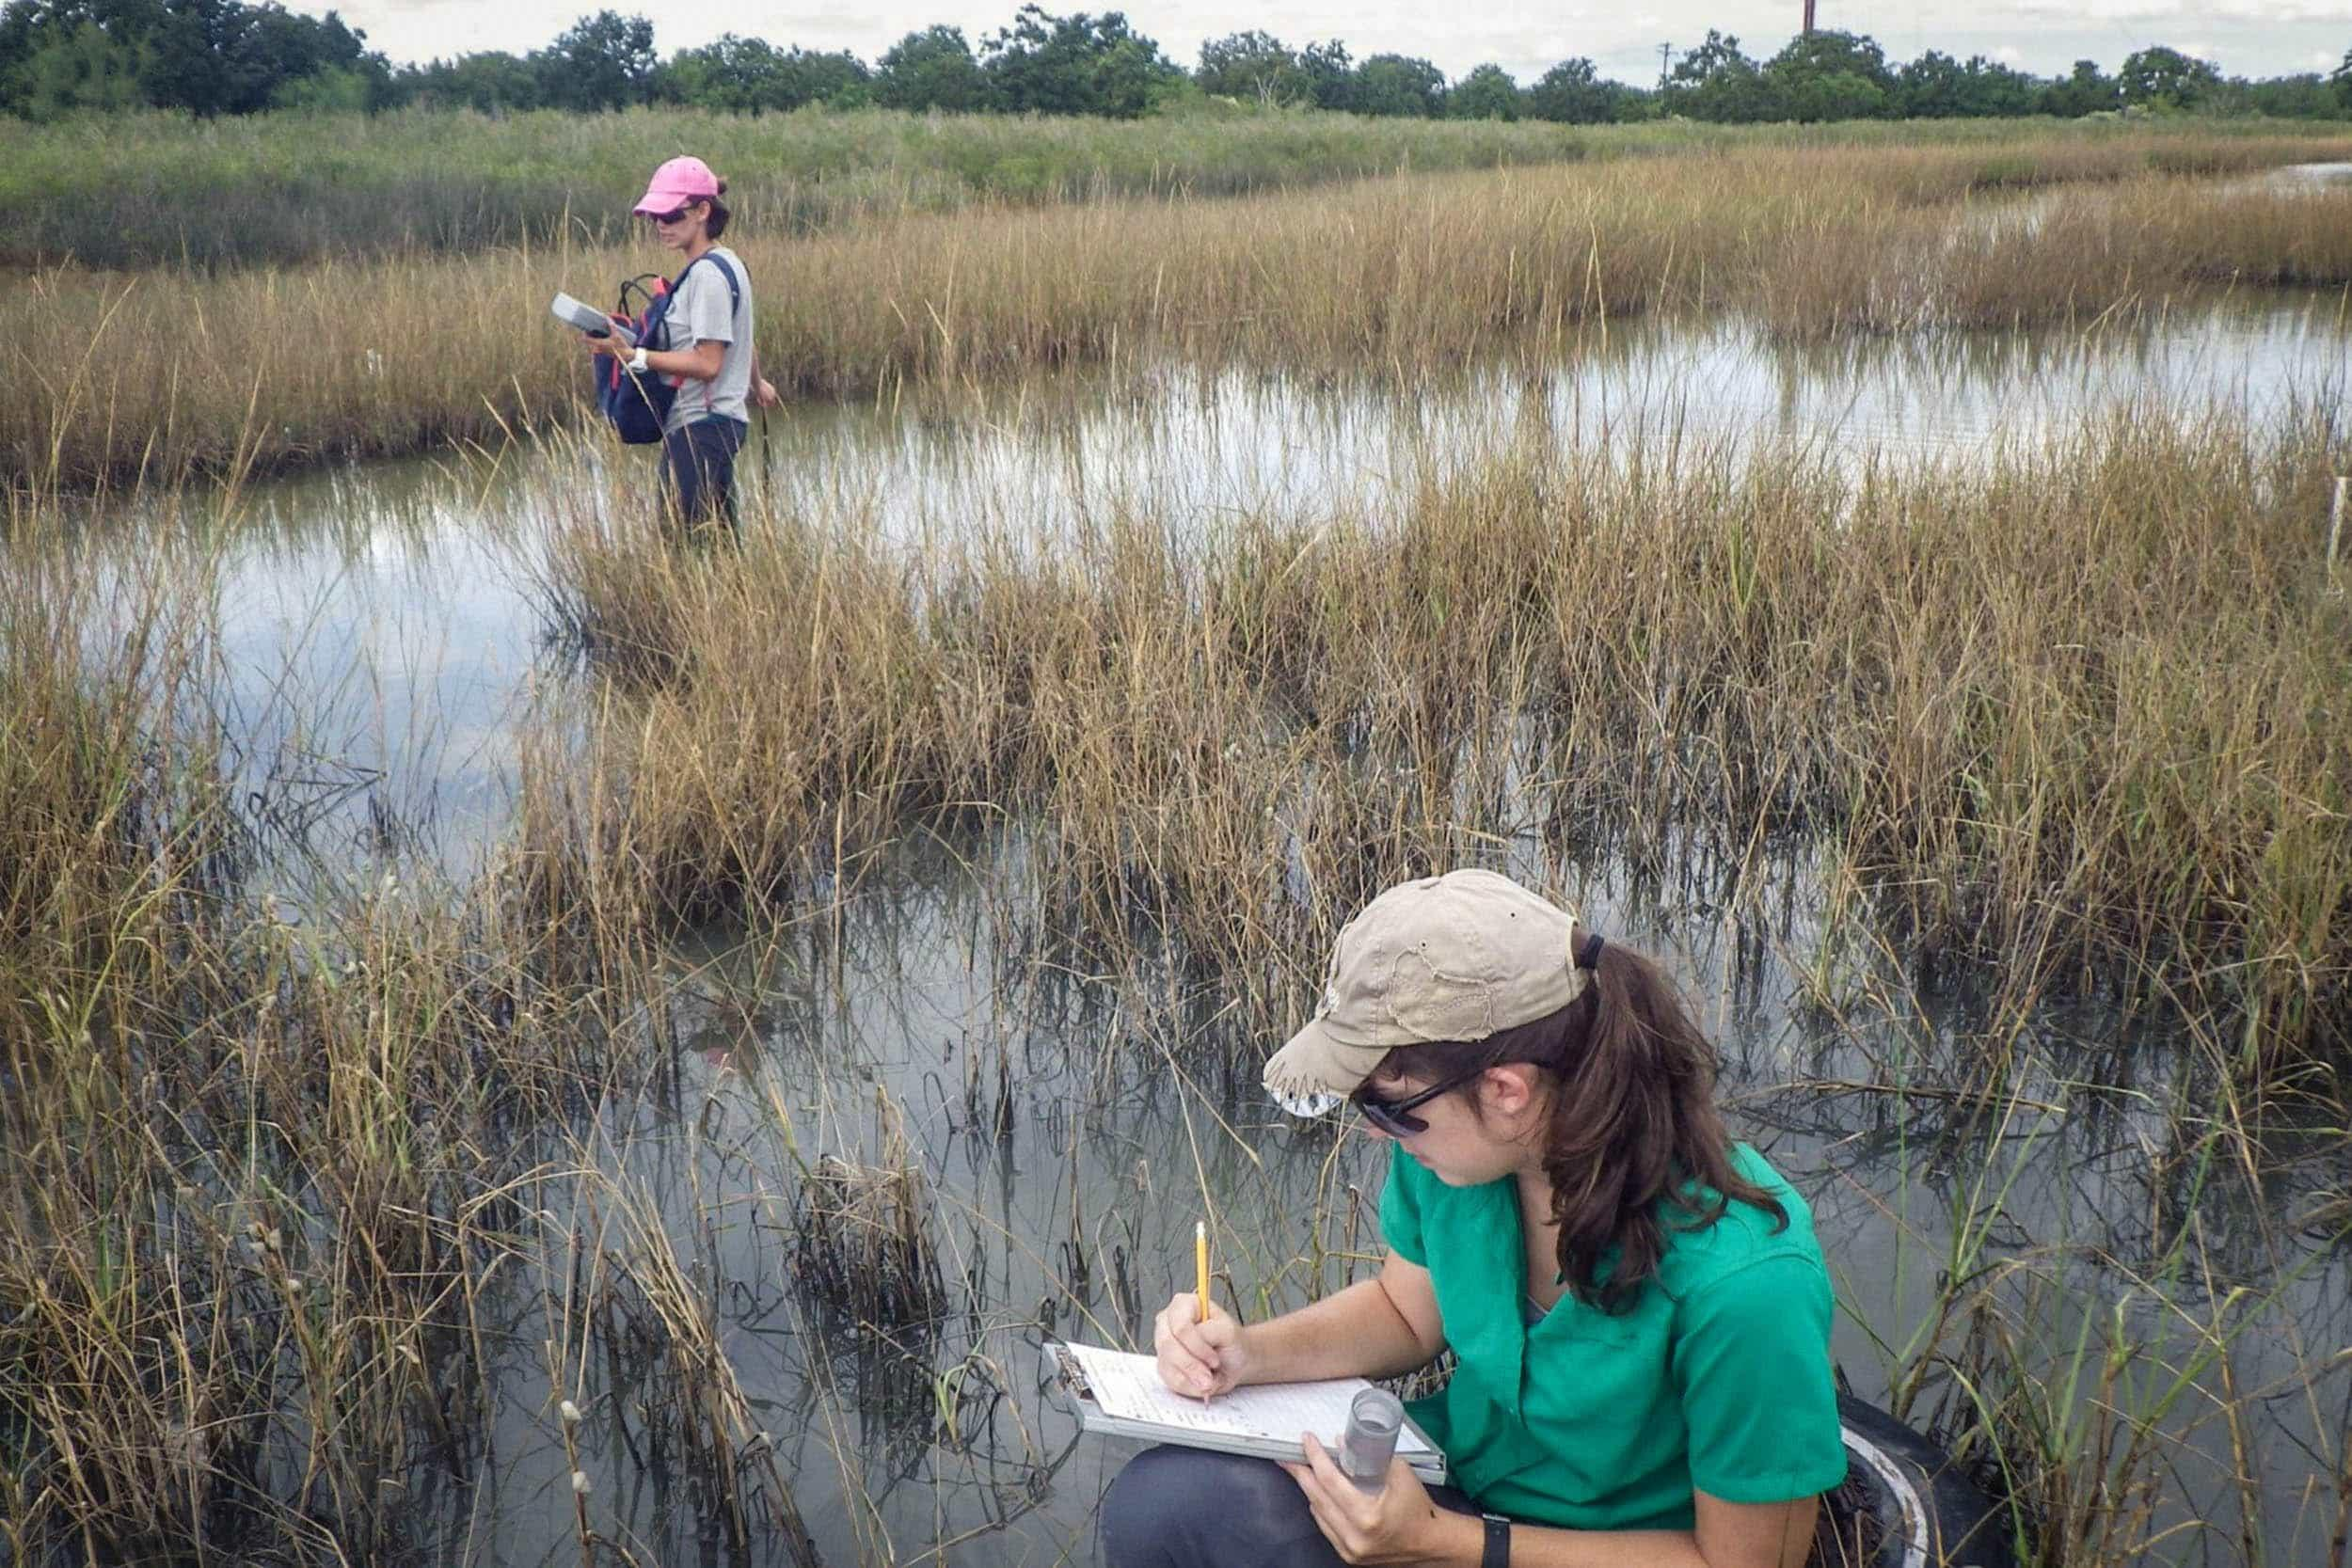 Graduate research assistants collect water quality data